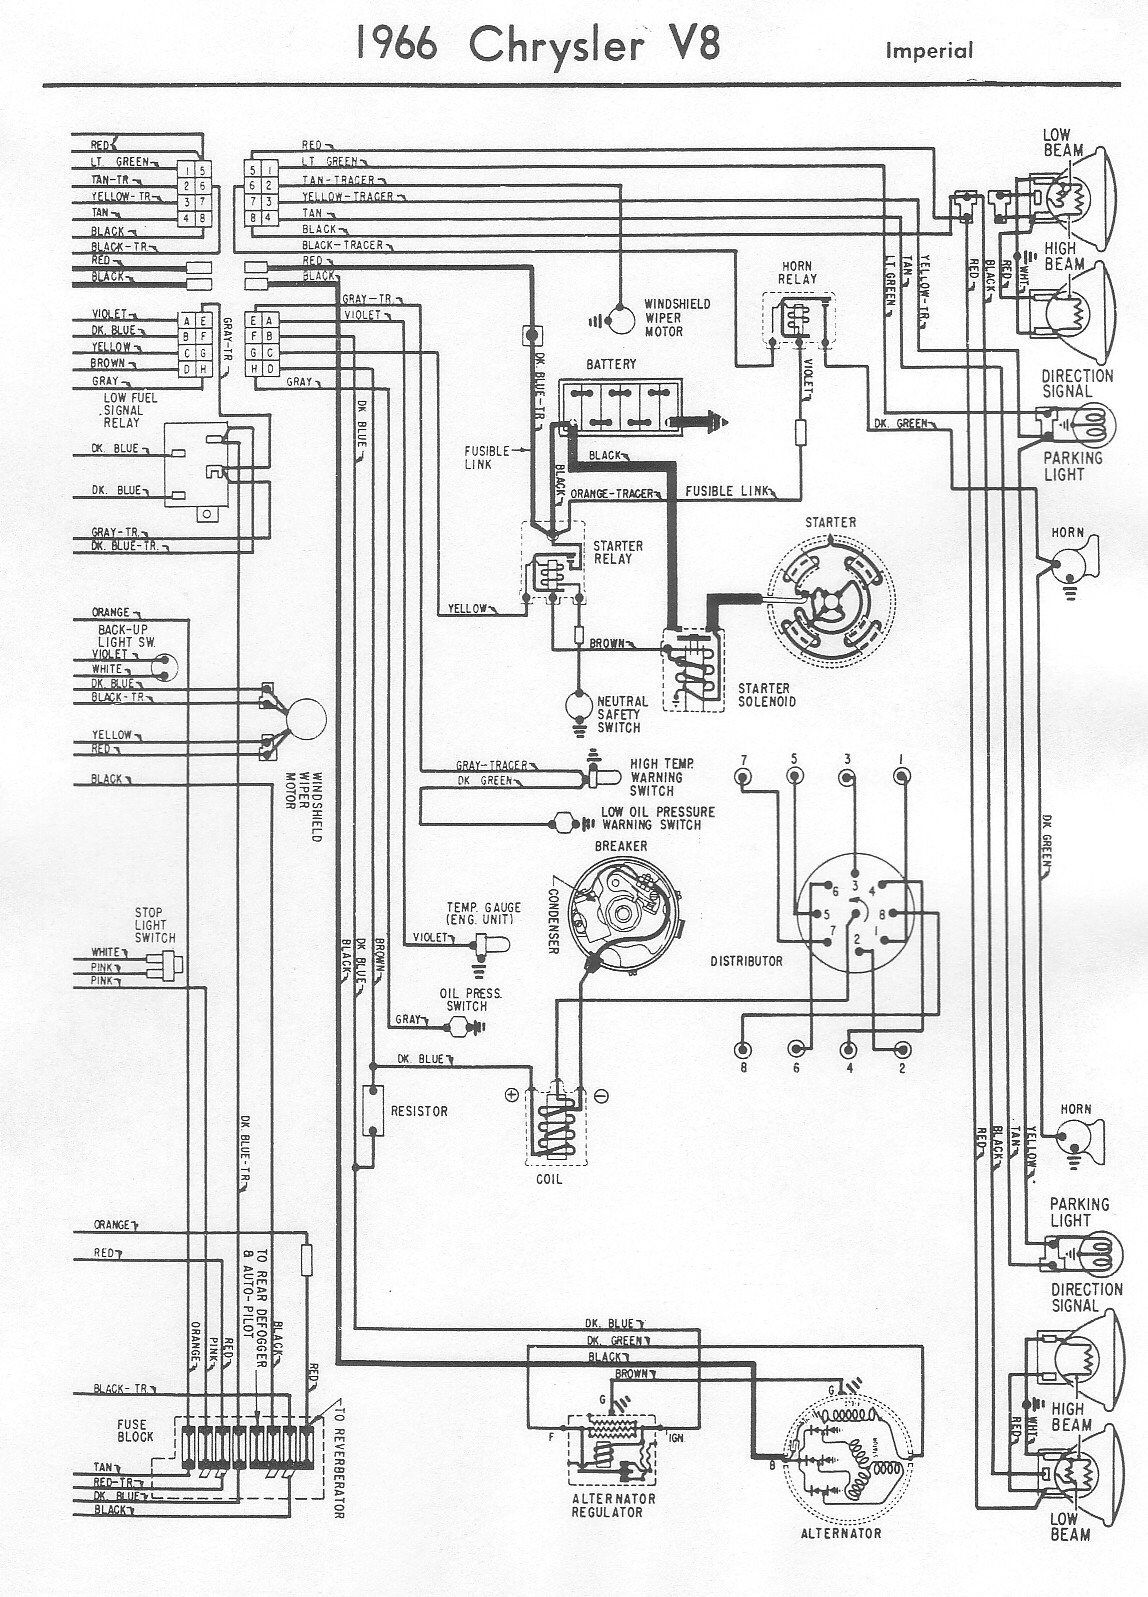 1966 Ford Air Conditioning Wiring Diagram Mustang Will Be A Thing Free Auto 1970 Plymouth Belvedere Gtx Diagrams Electrical Schematics